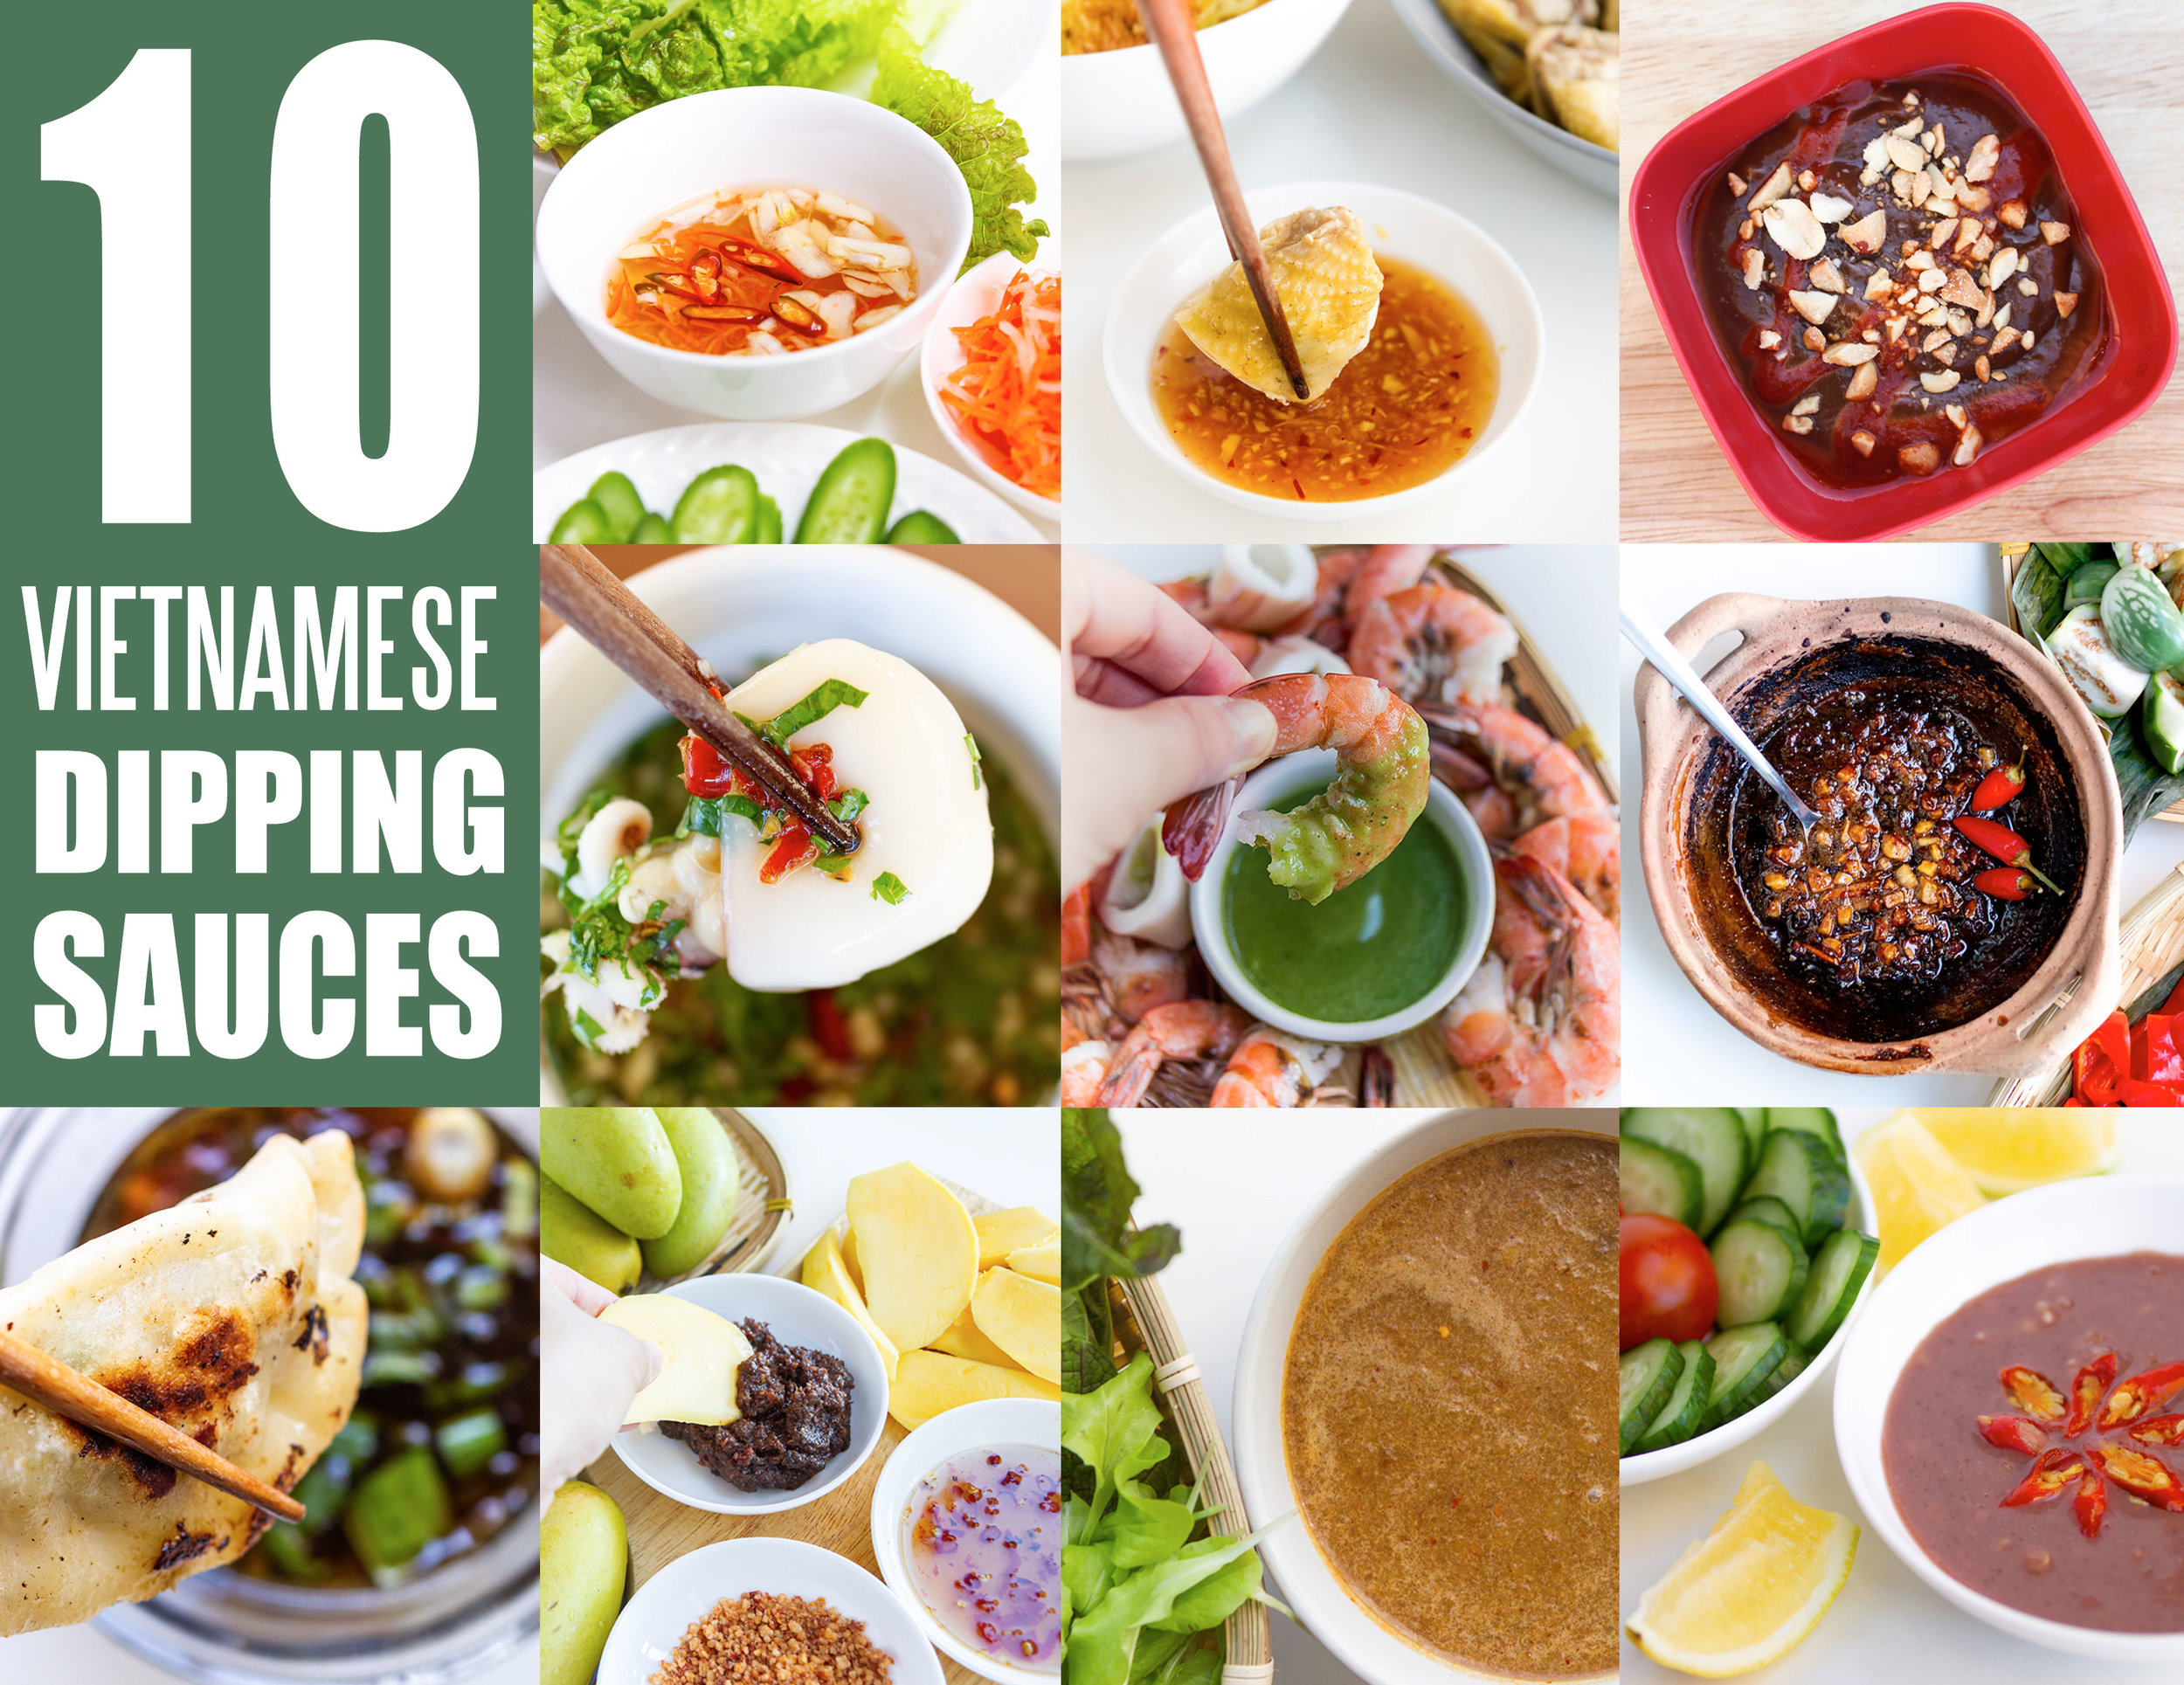 10 Popular Vietnamese Dipping Sauces